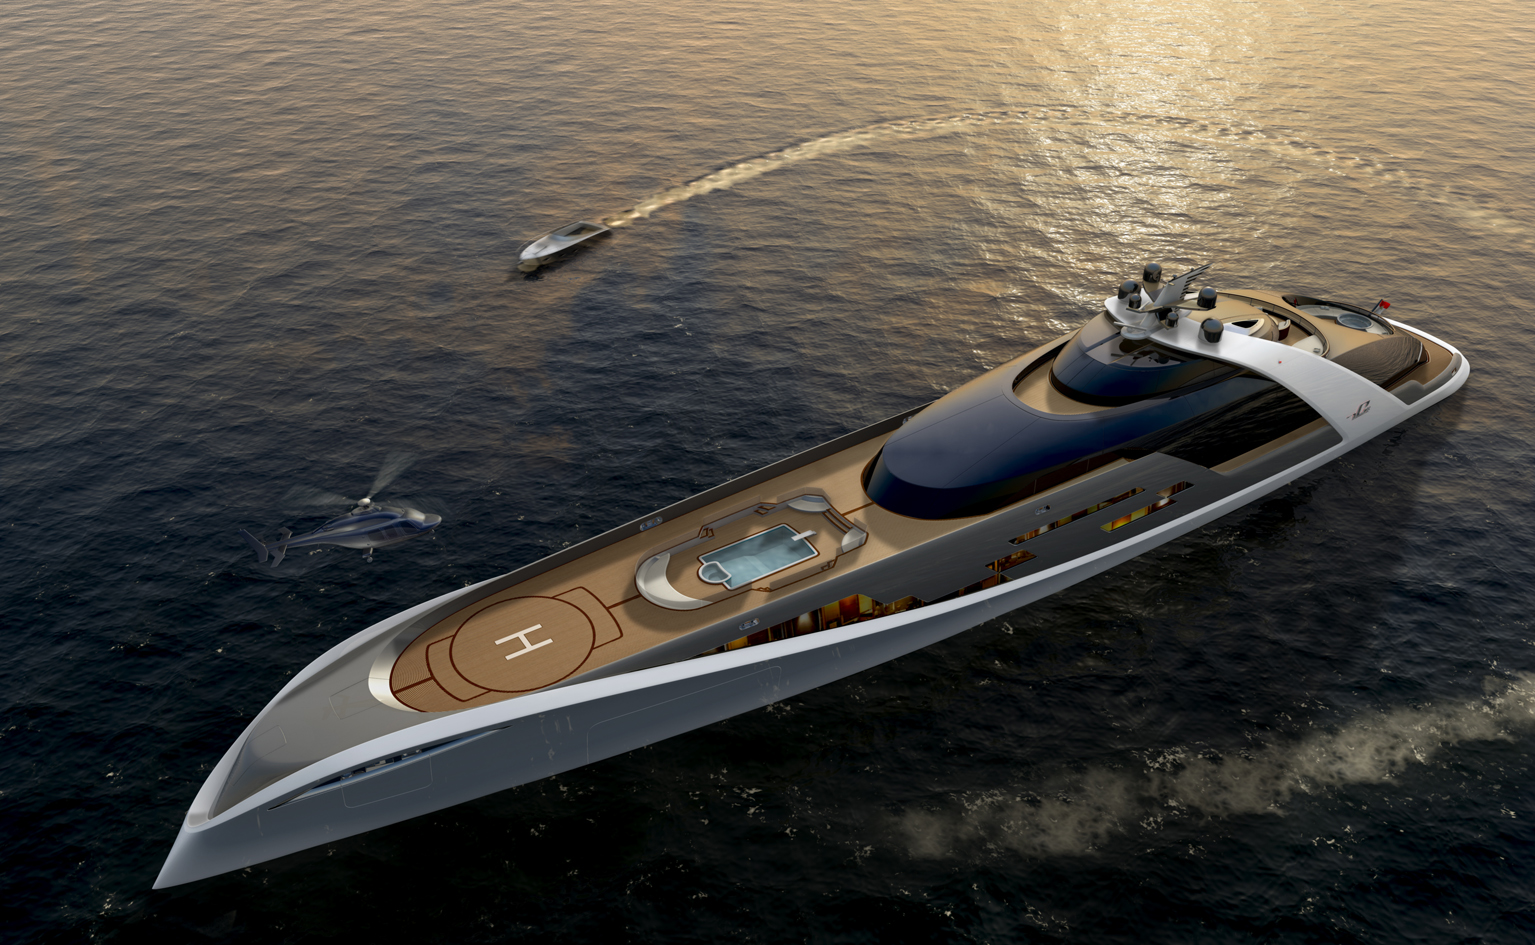 View Large Version Of Image An Automative Adaption Superyacht 7Cs